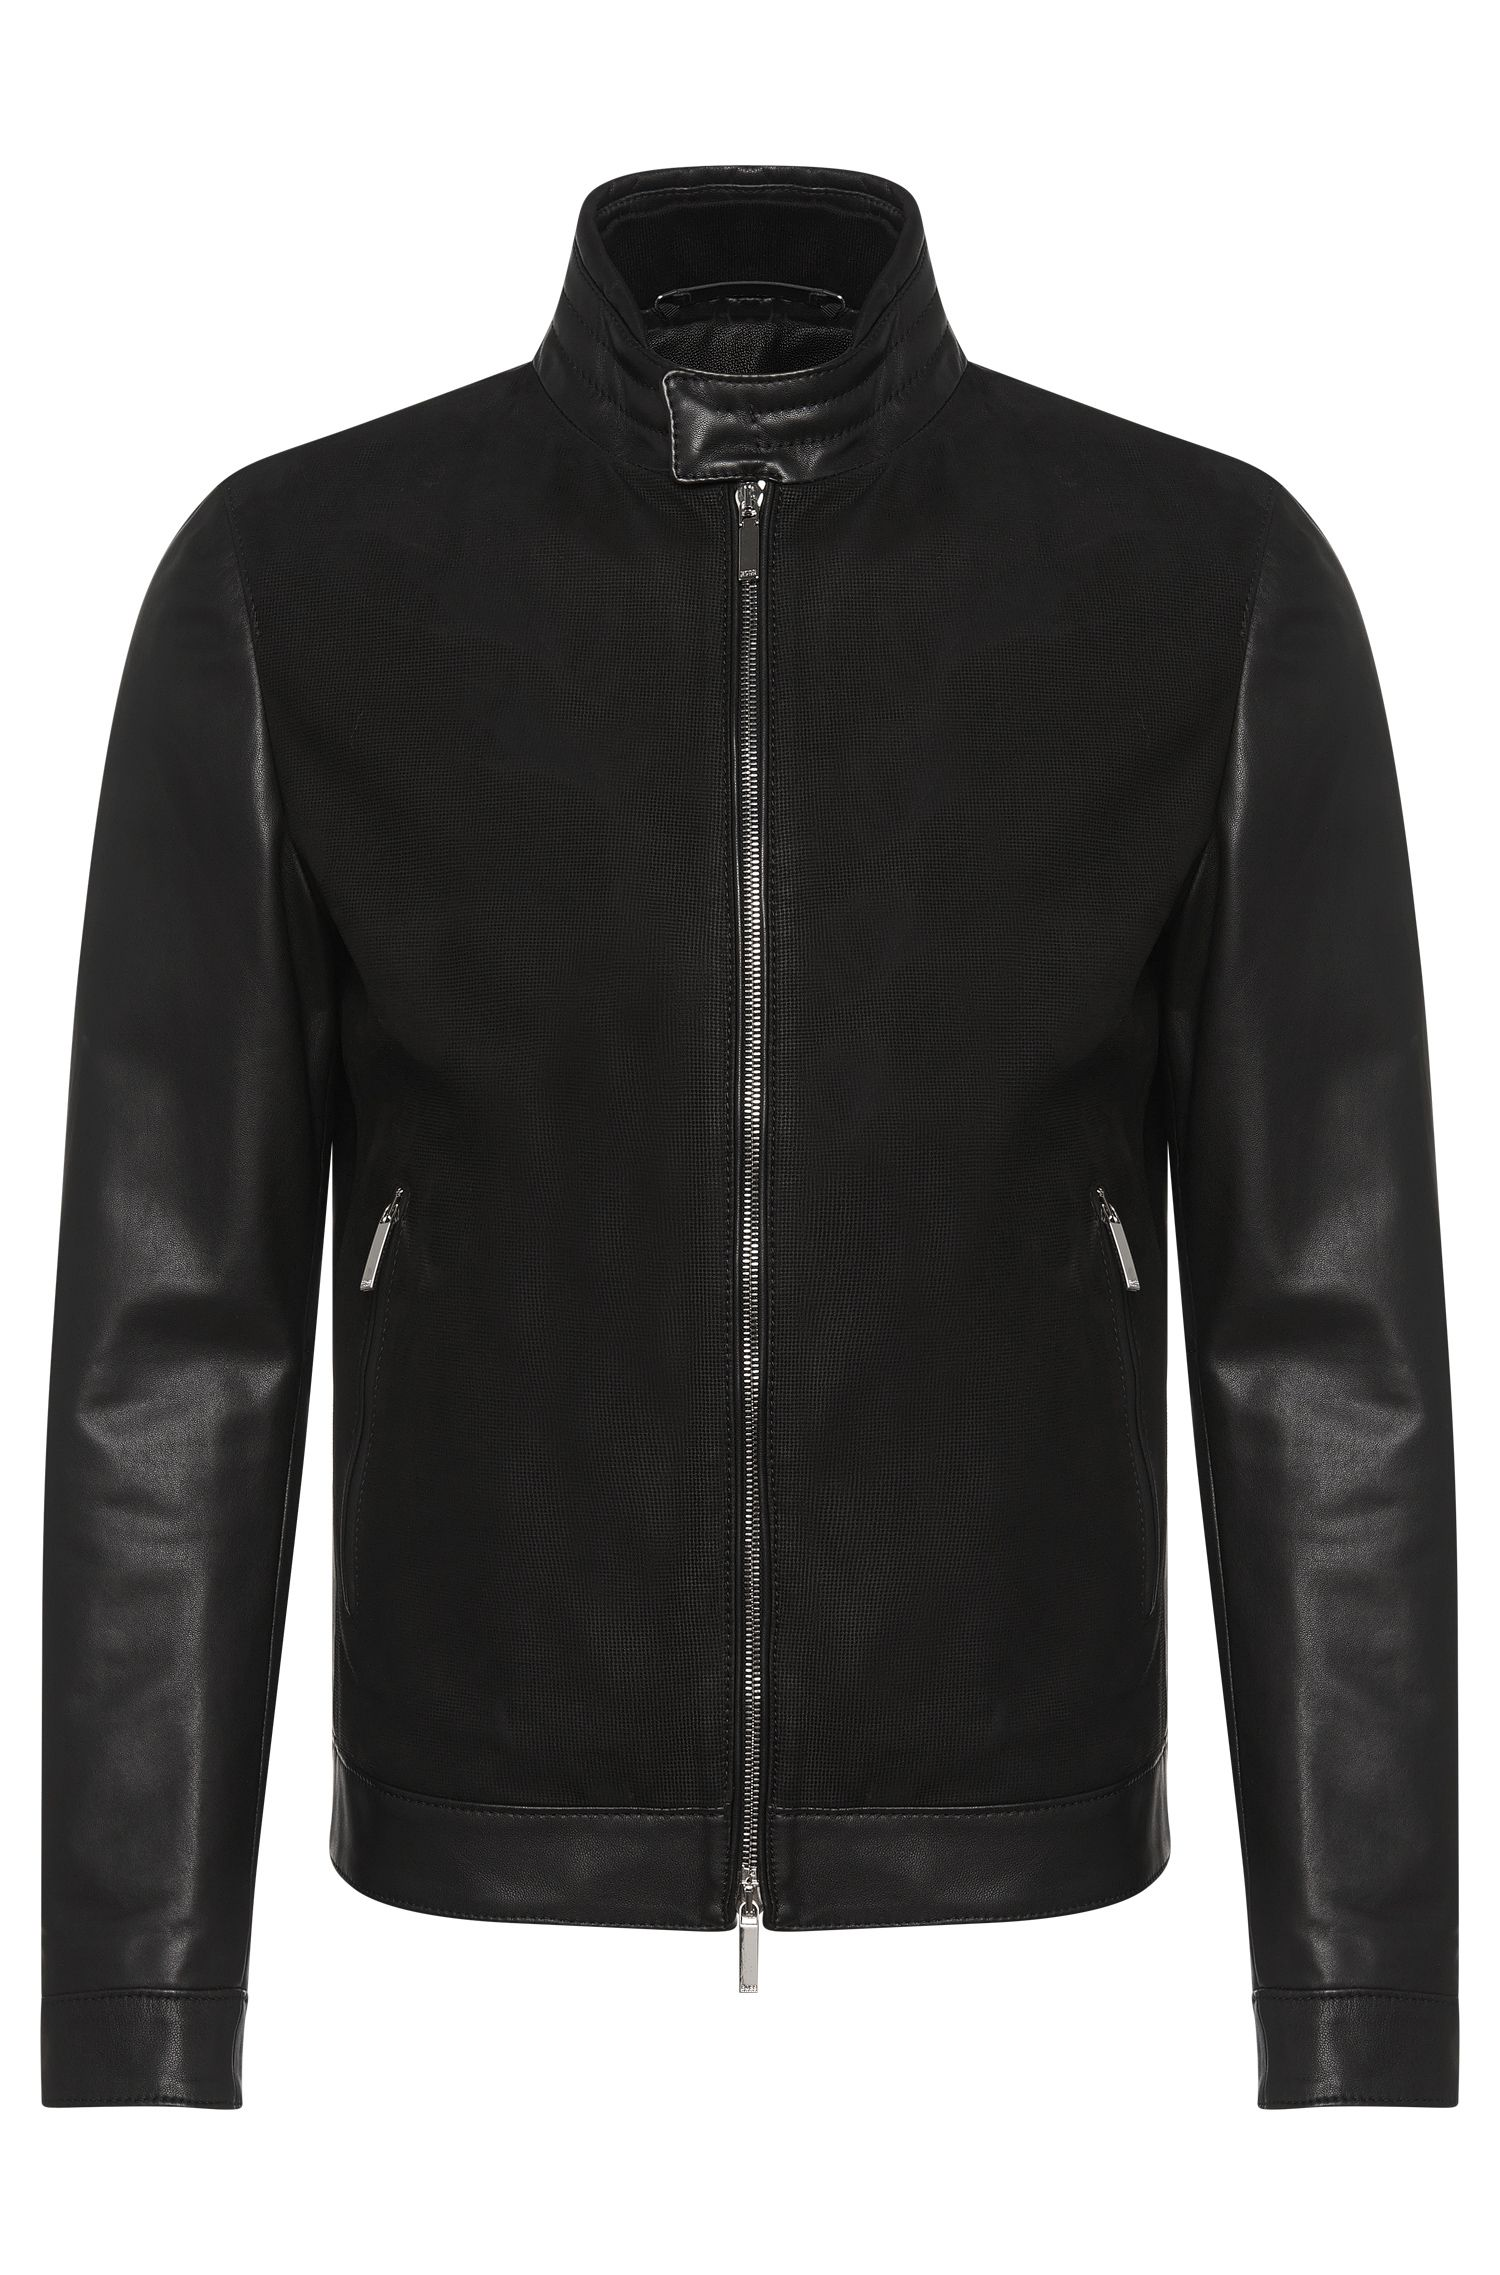 'T-Nersiko' | Italian Lambskin Leather Jacket